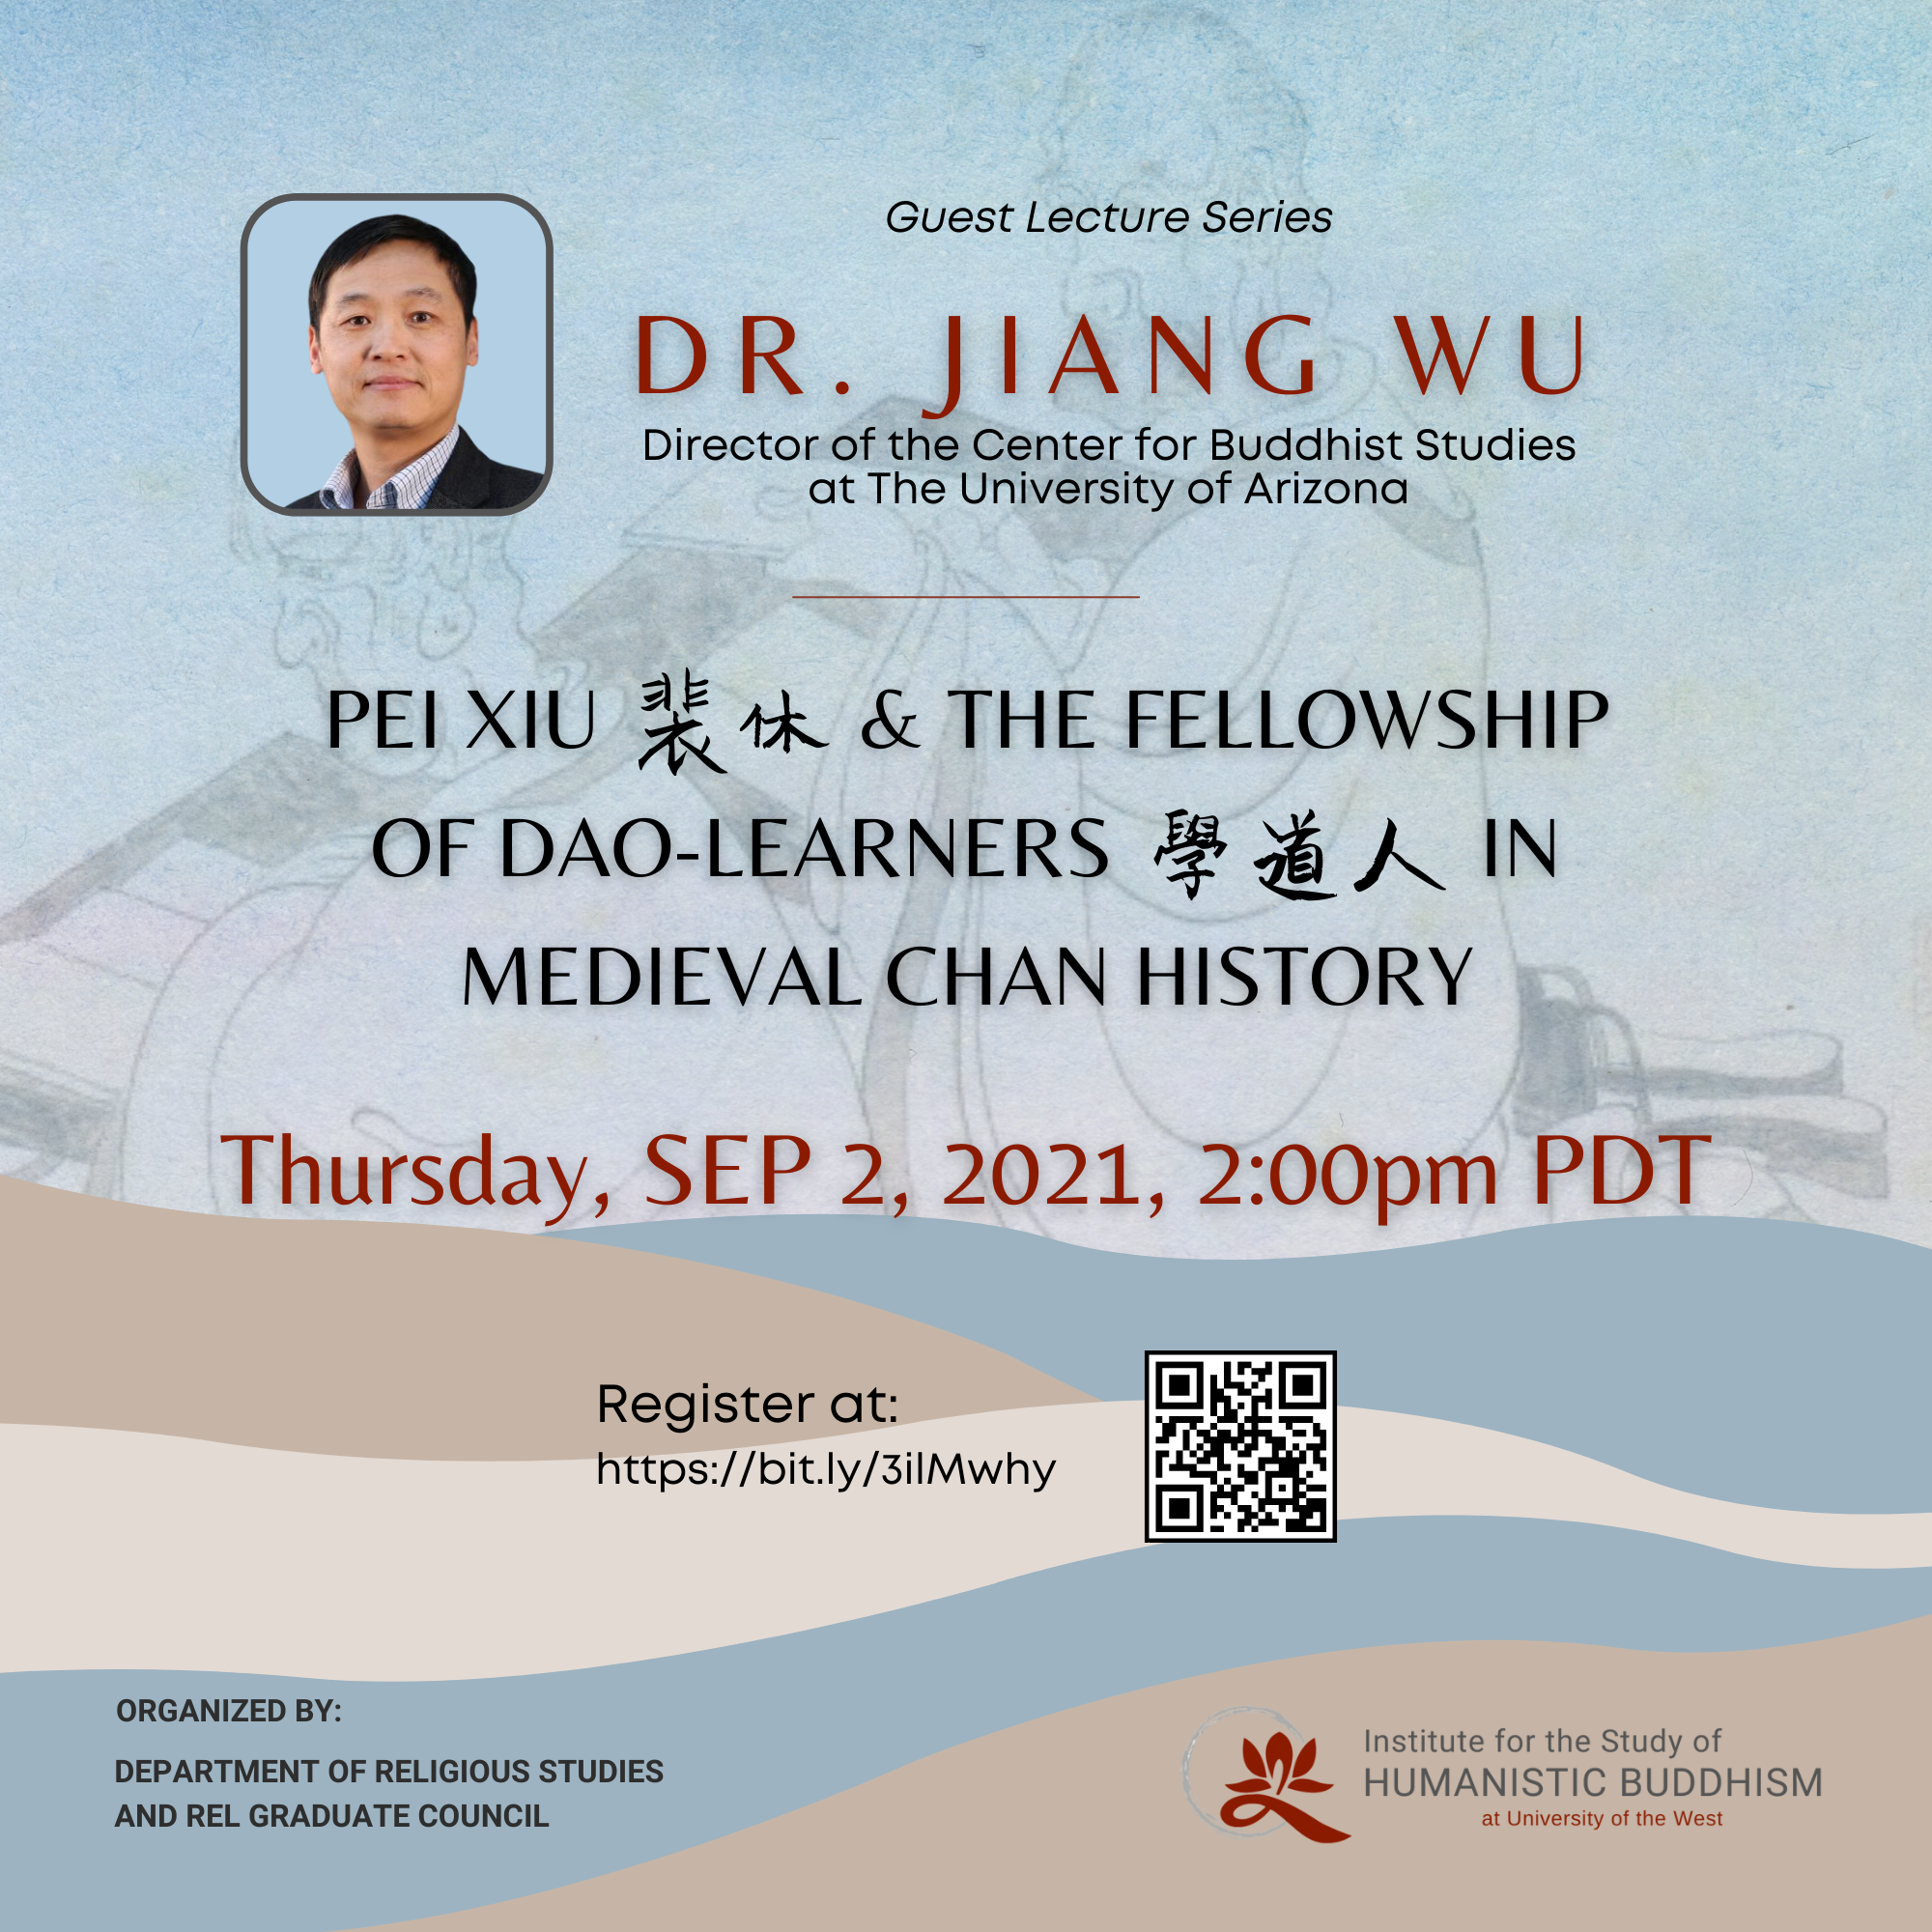 Dr. Jiang Wu lecture flyer